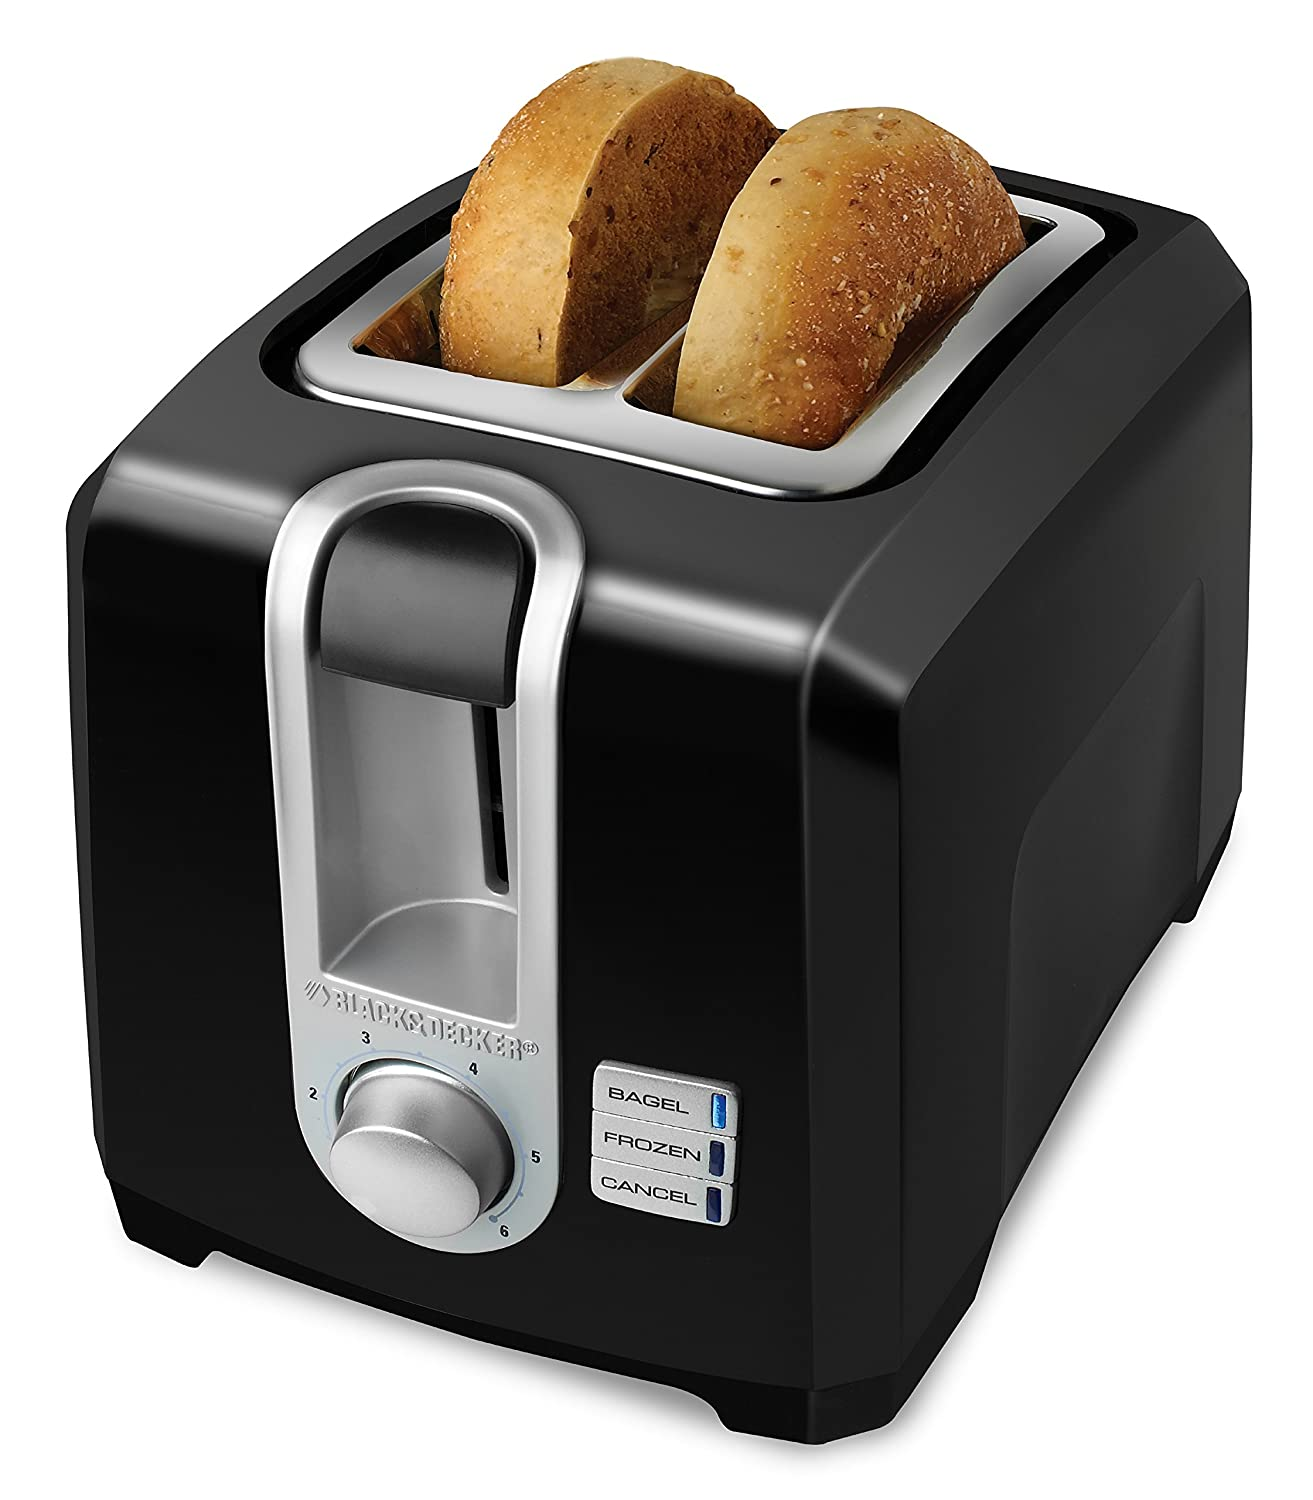 Quilted Kitchen Appliance Covers Amazoncom Black Decker T2569b 2 Slice Toaster Bagel Toaster